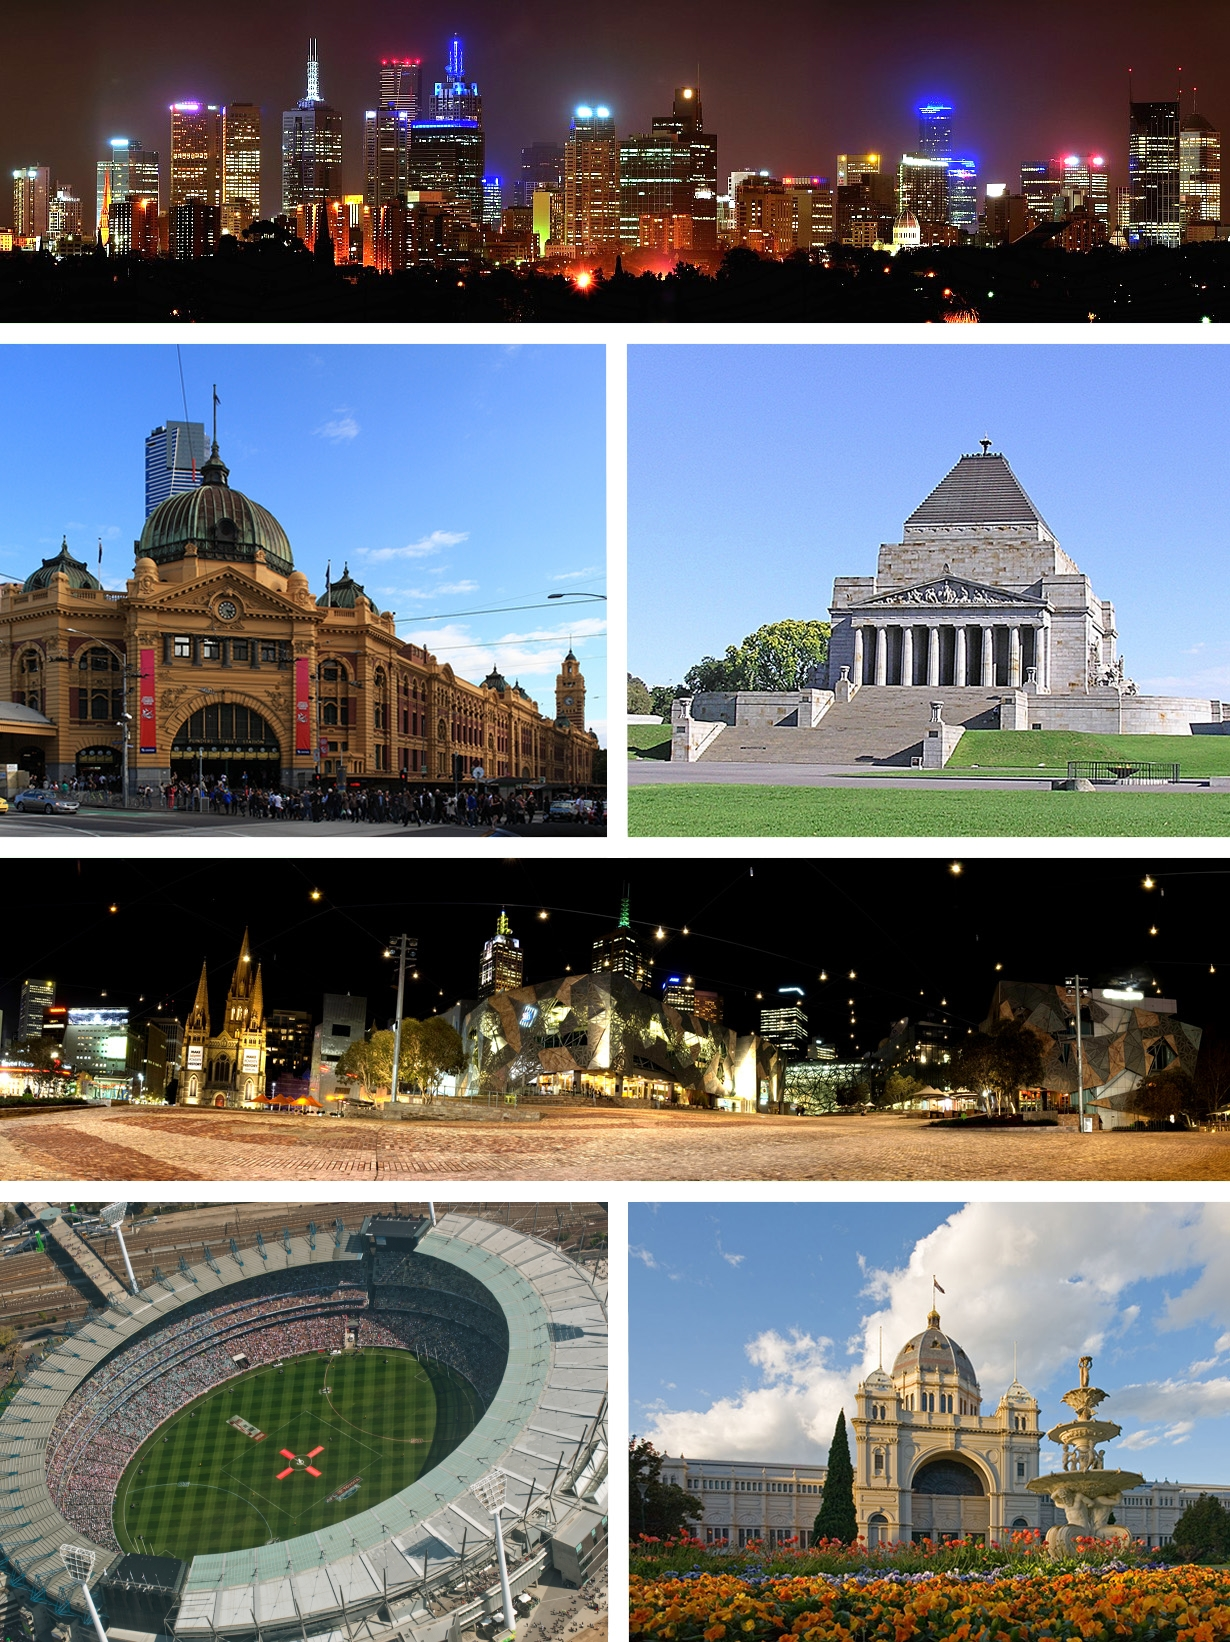 File:Melbourne city montage.jpg - Wikimedia Commons